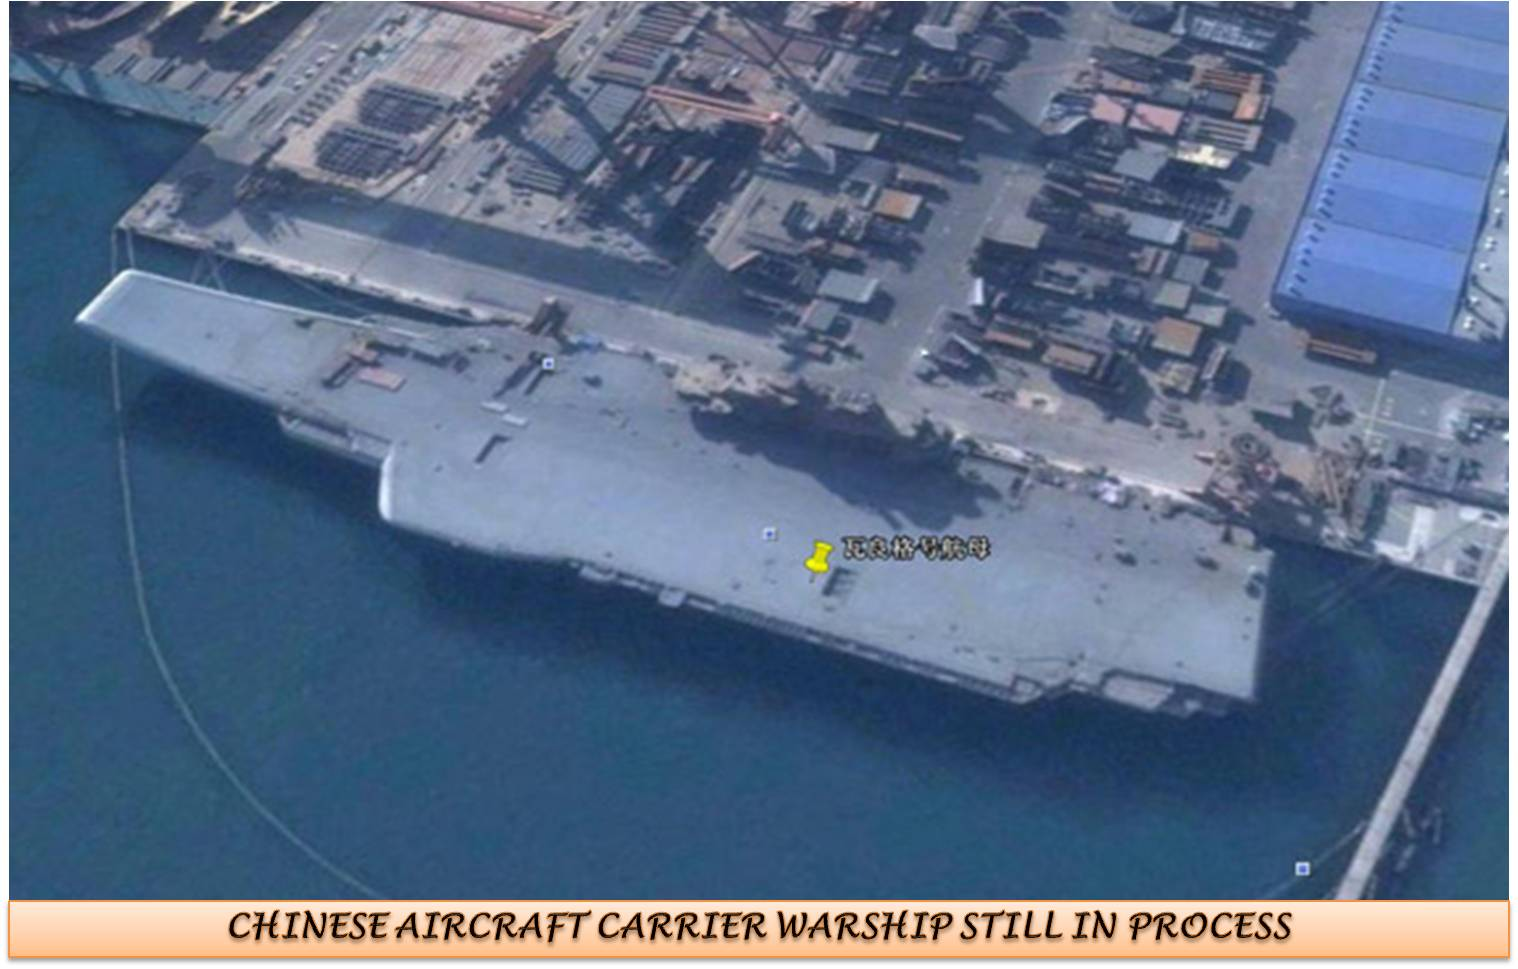 ... CONUNDRUM FOR CHINA » CHINESE AIRCRAFT CARRIER SHIP STILL IN PROCESS